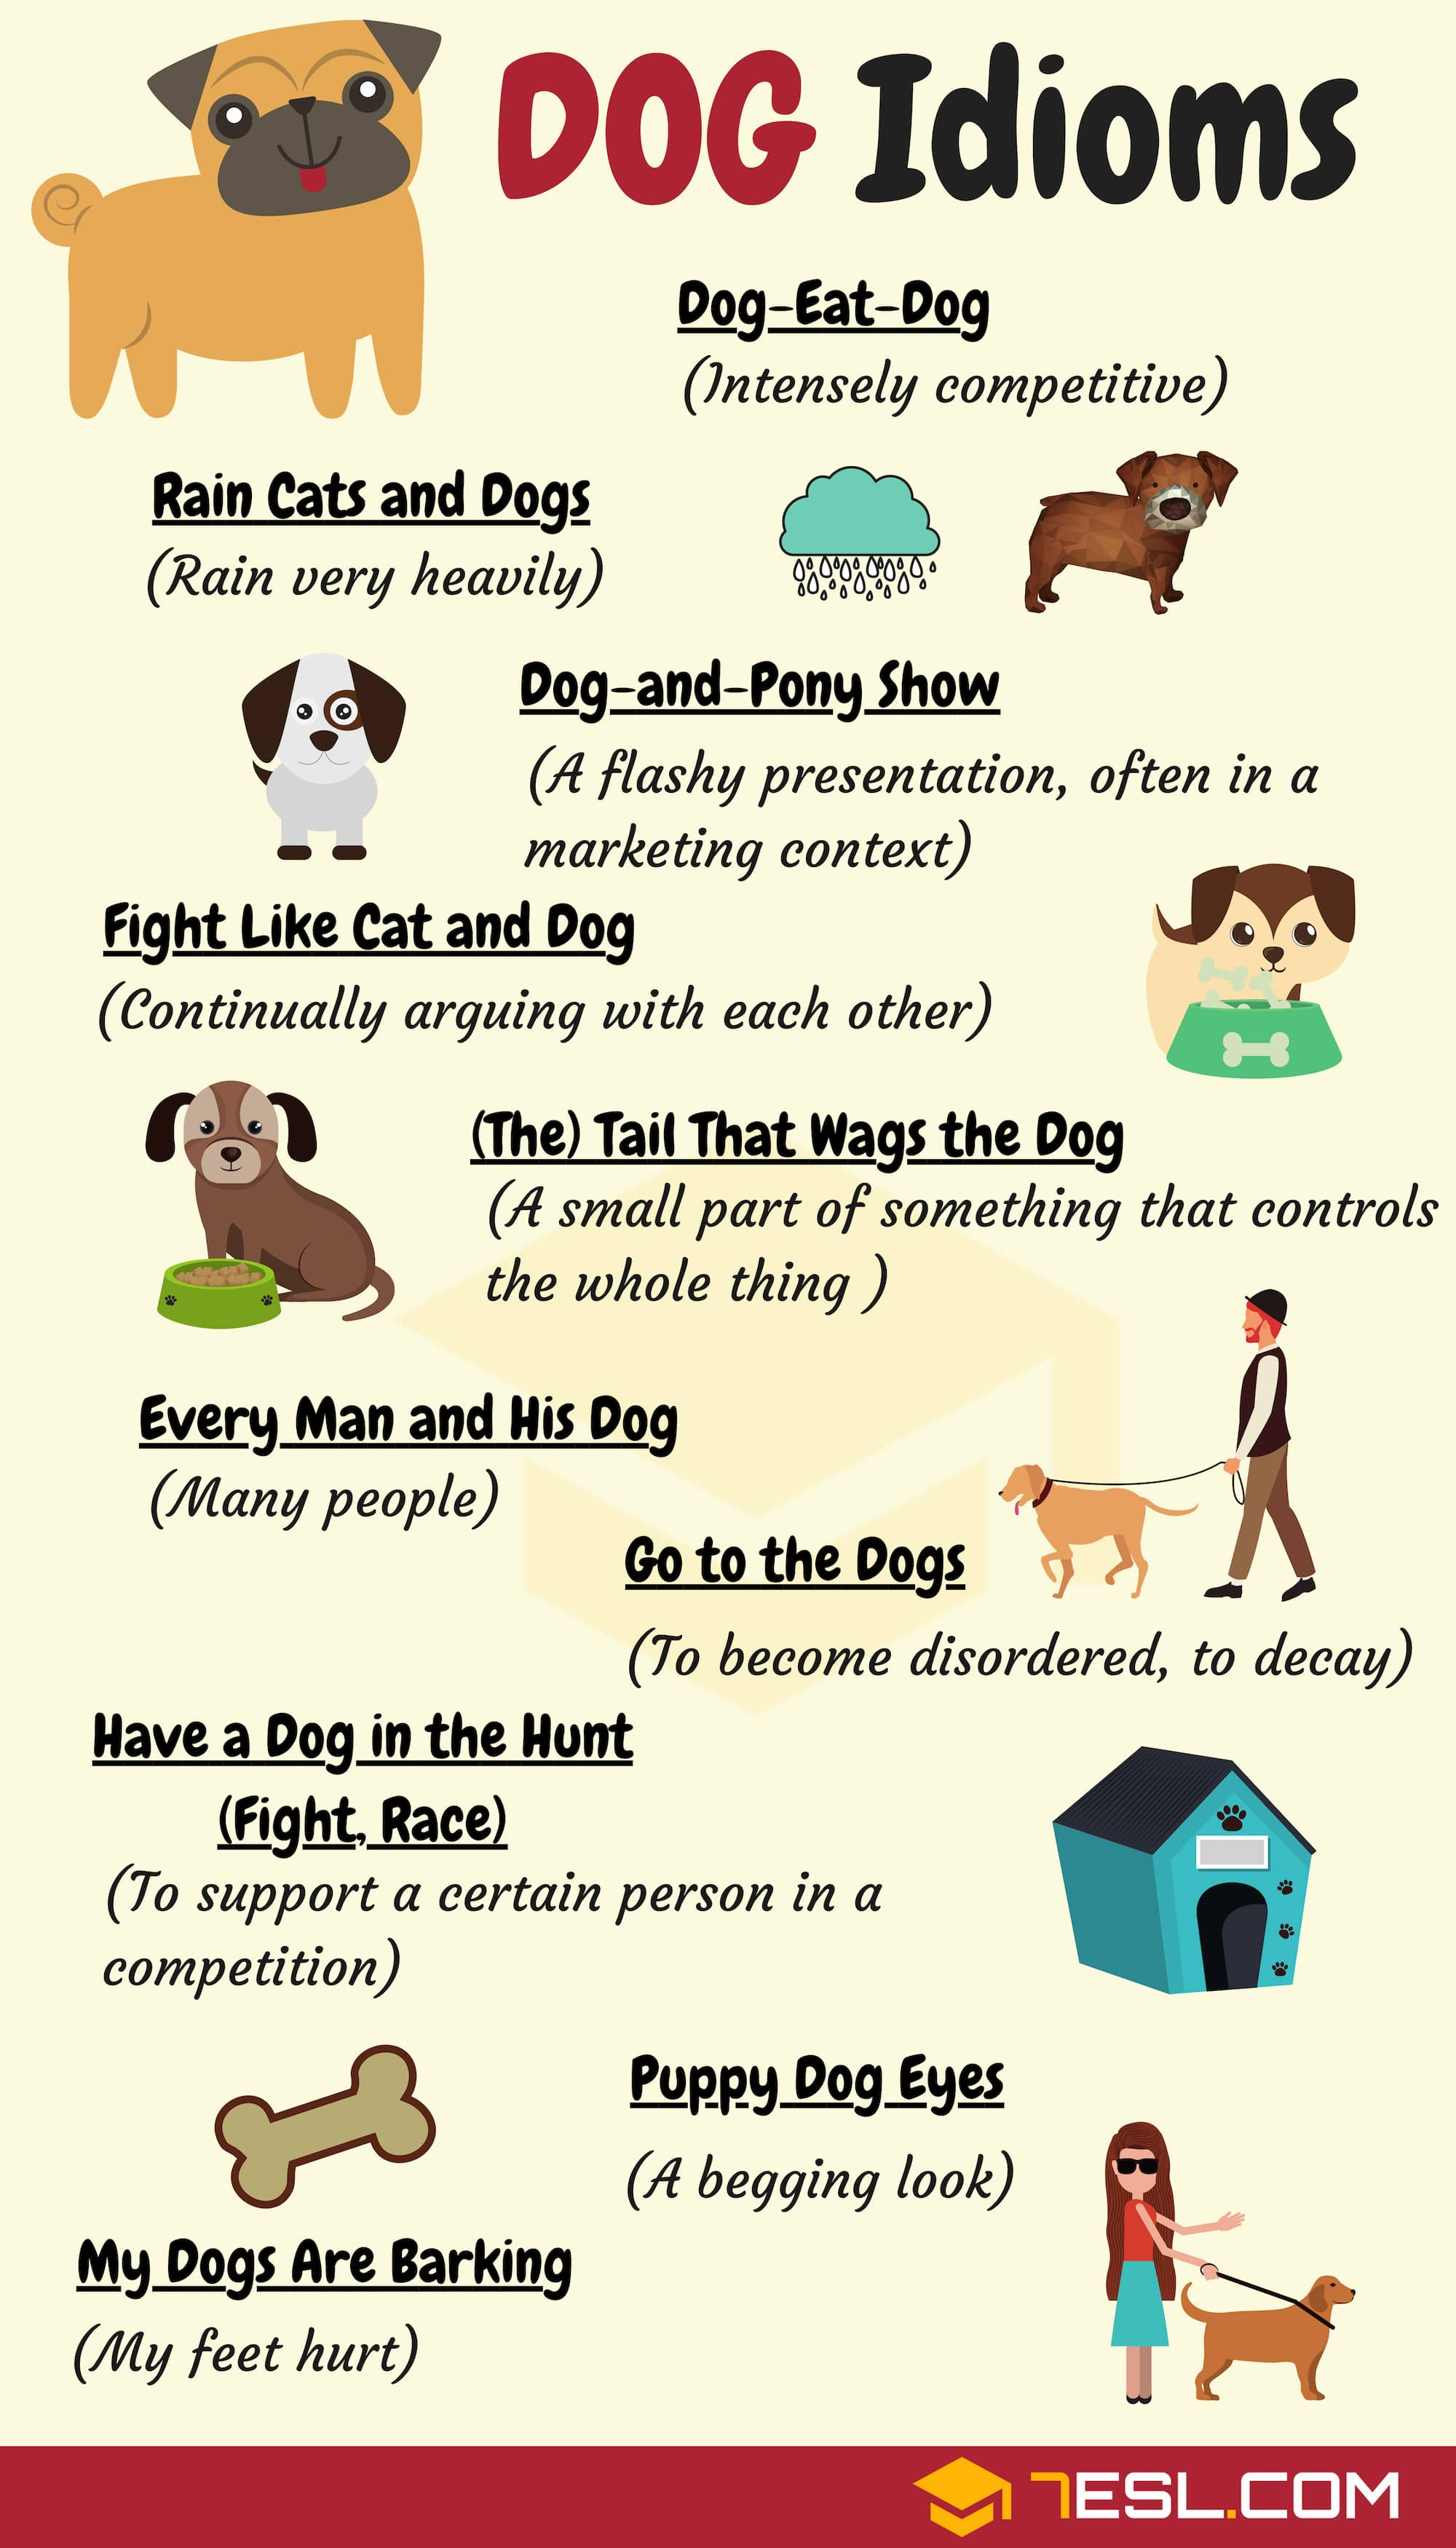 Dog Idioms 16 Useful Dog Idioms And Sayings